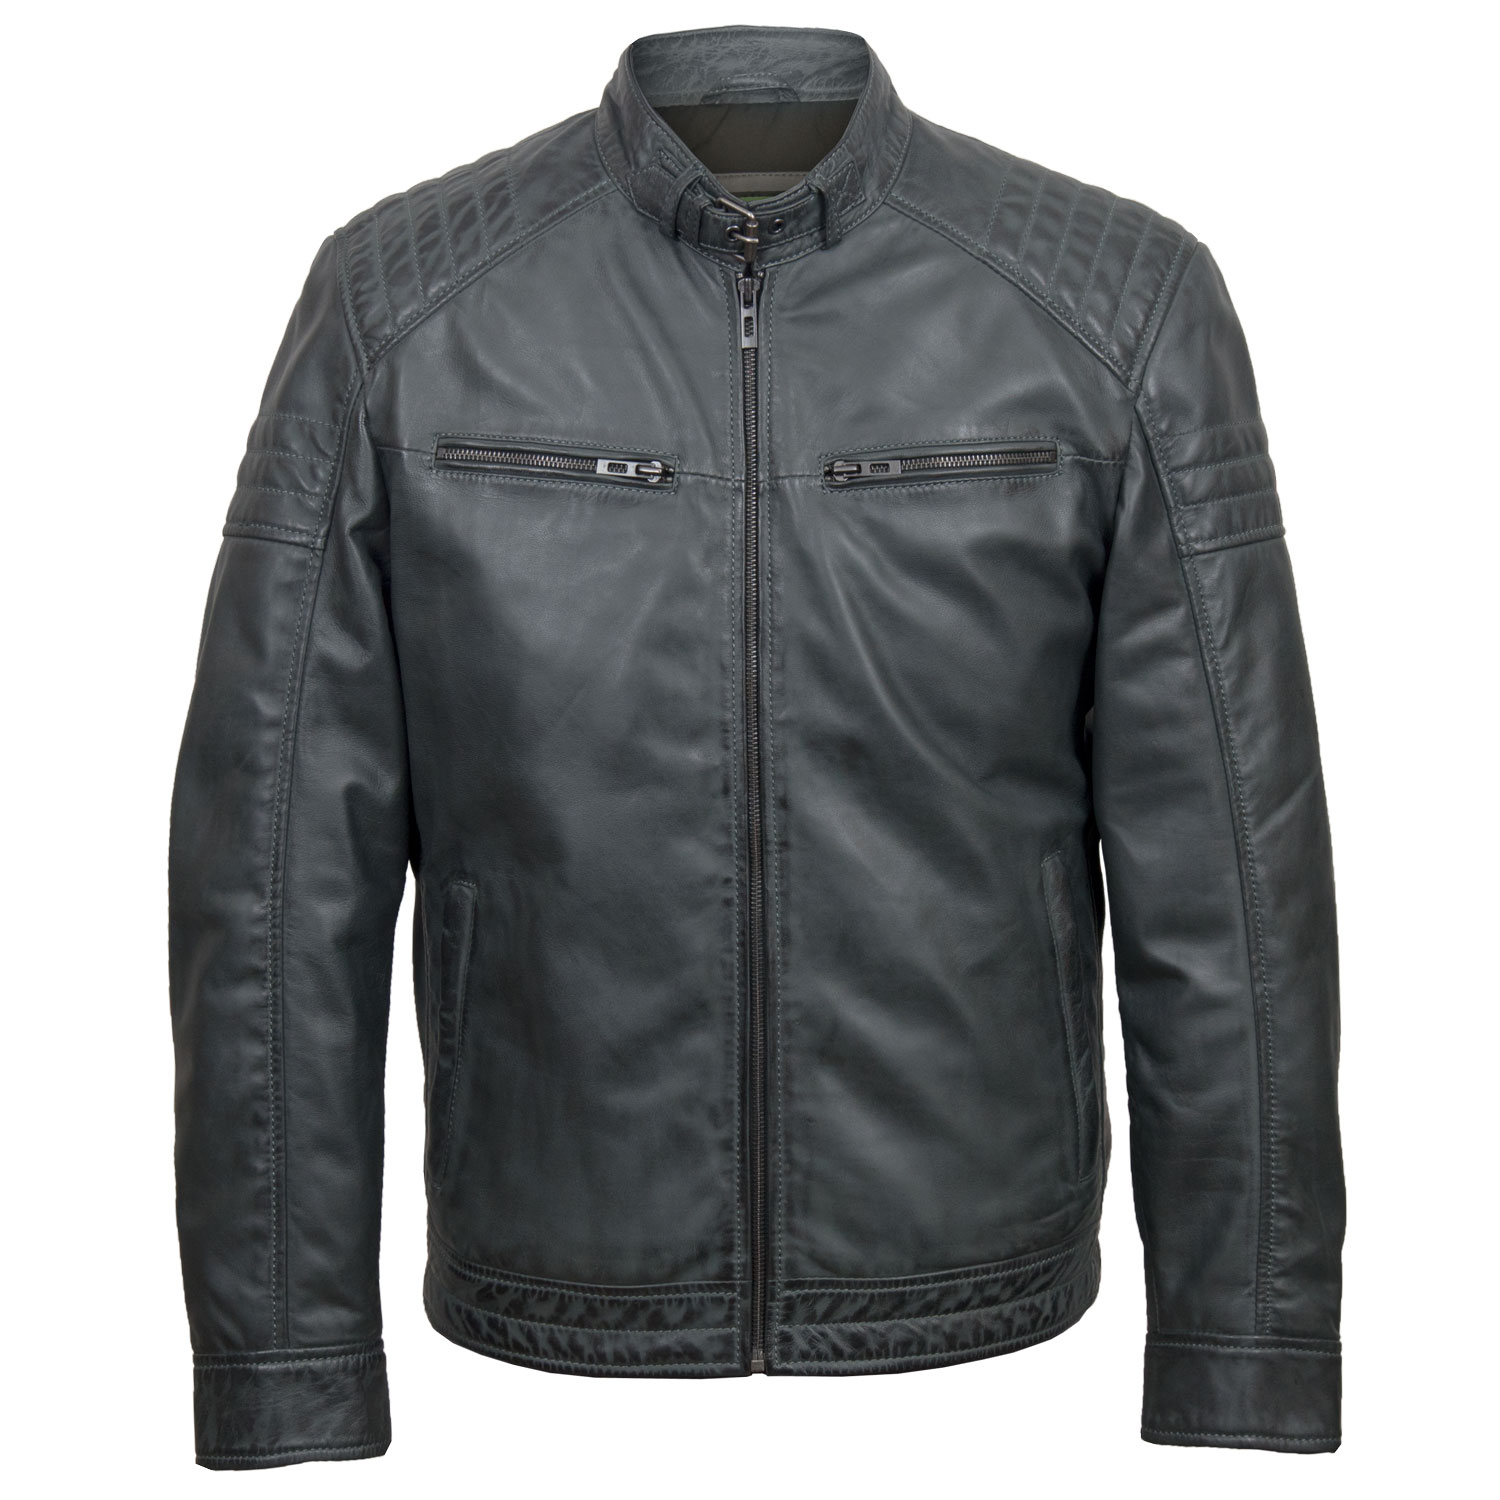 Men's Grey Leather Jackets